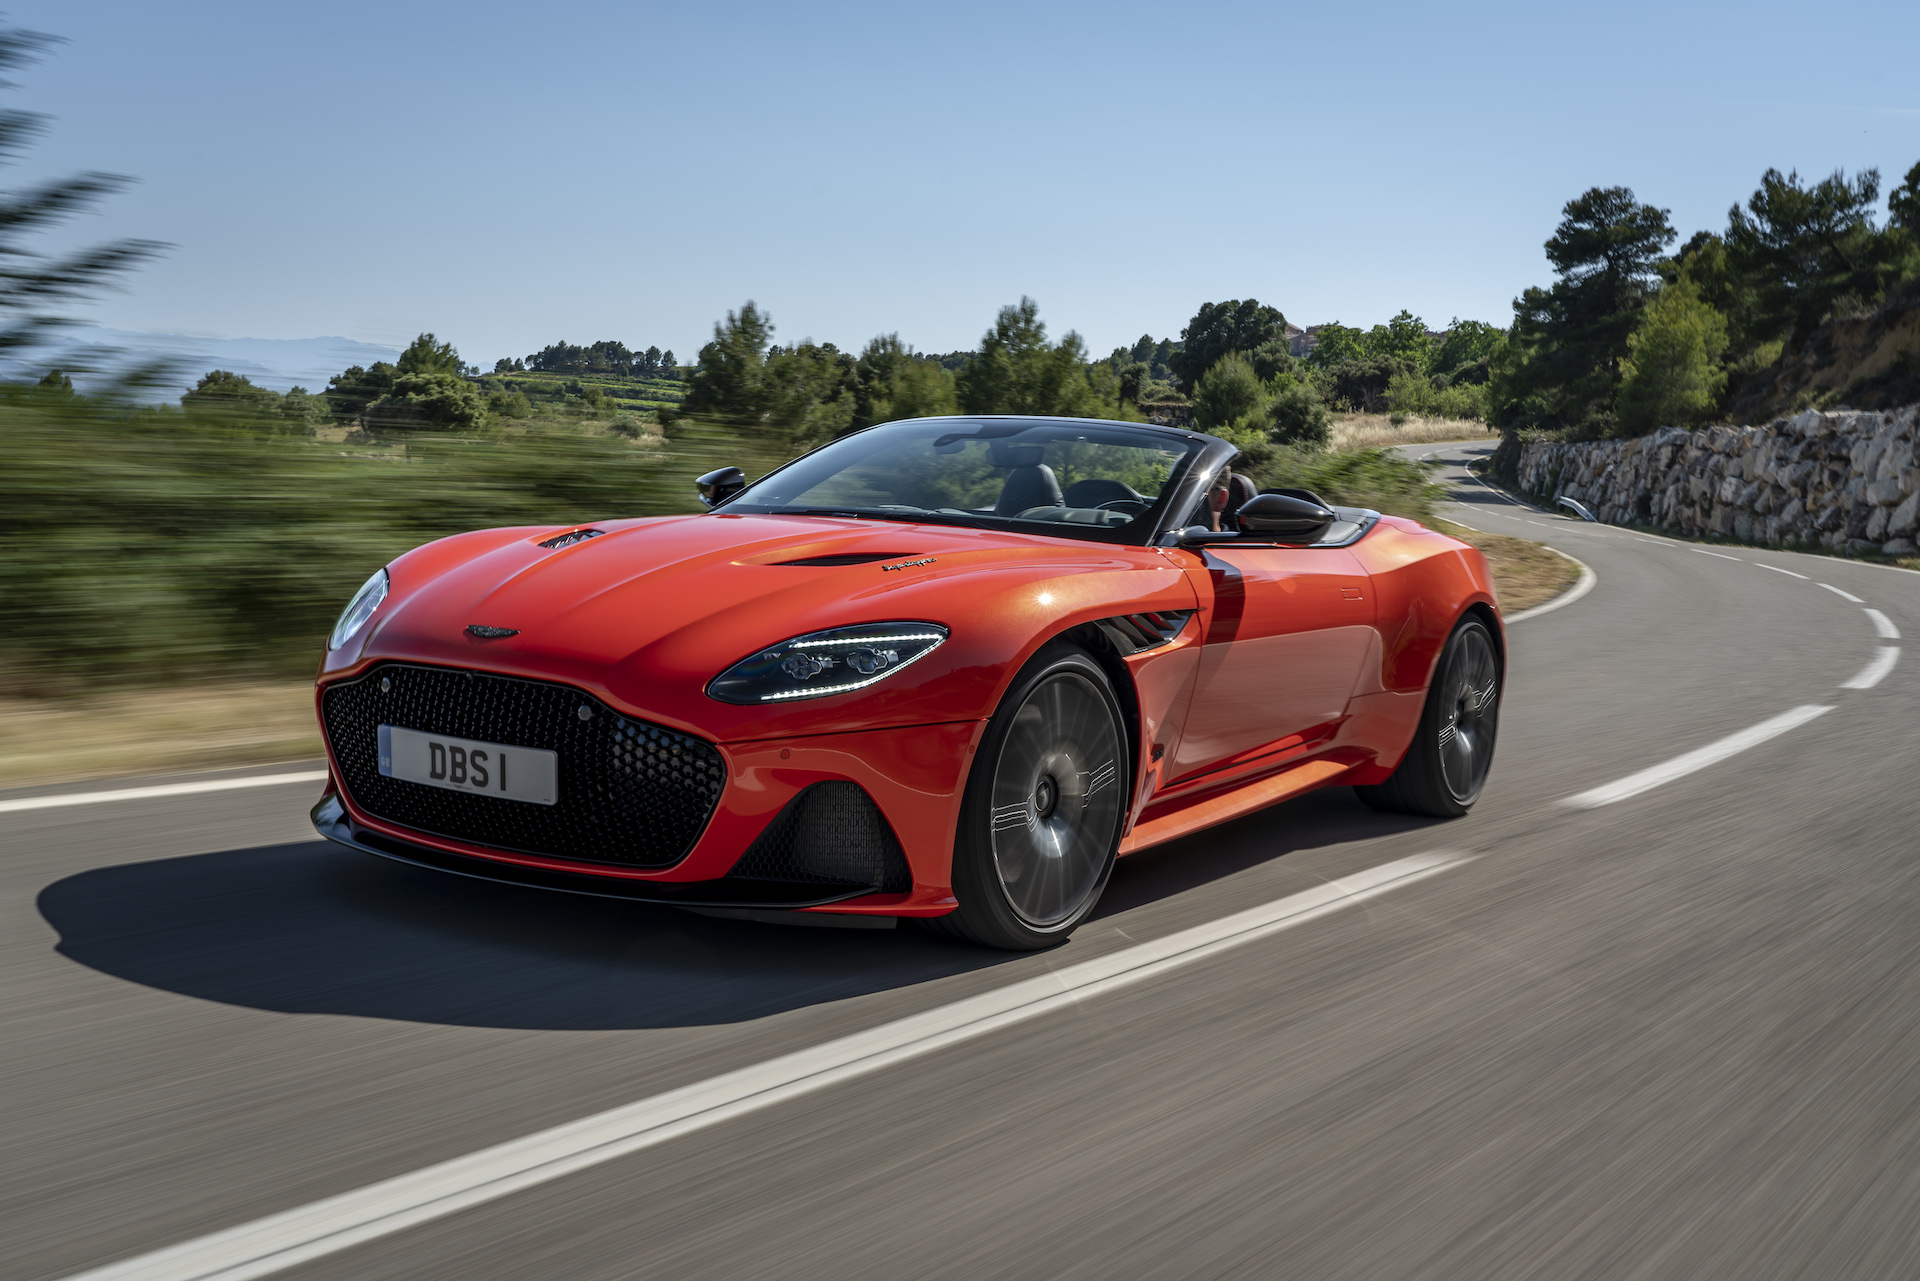 First Drive Review 2020 Aston Martin Dbs Superleggera Volante Is The Right Light